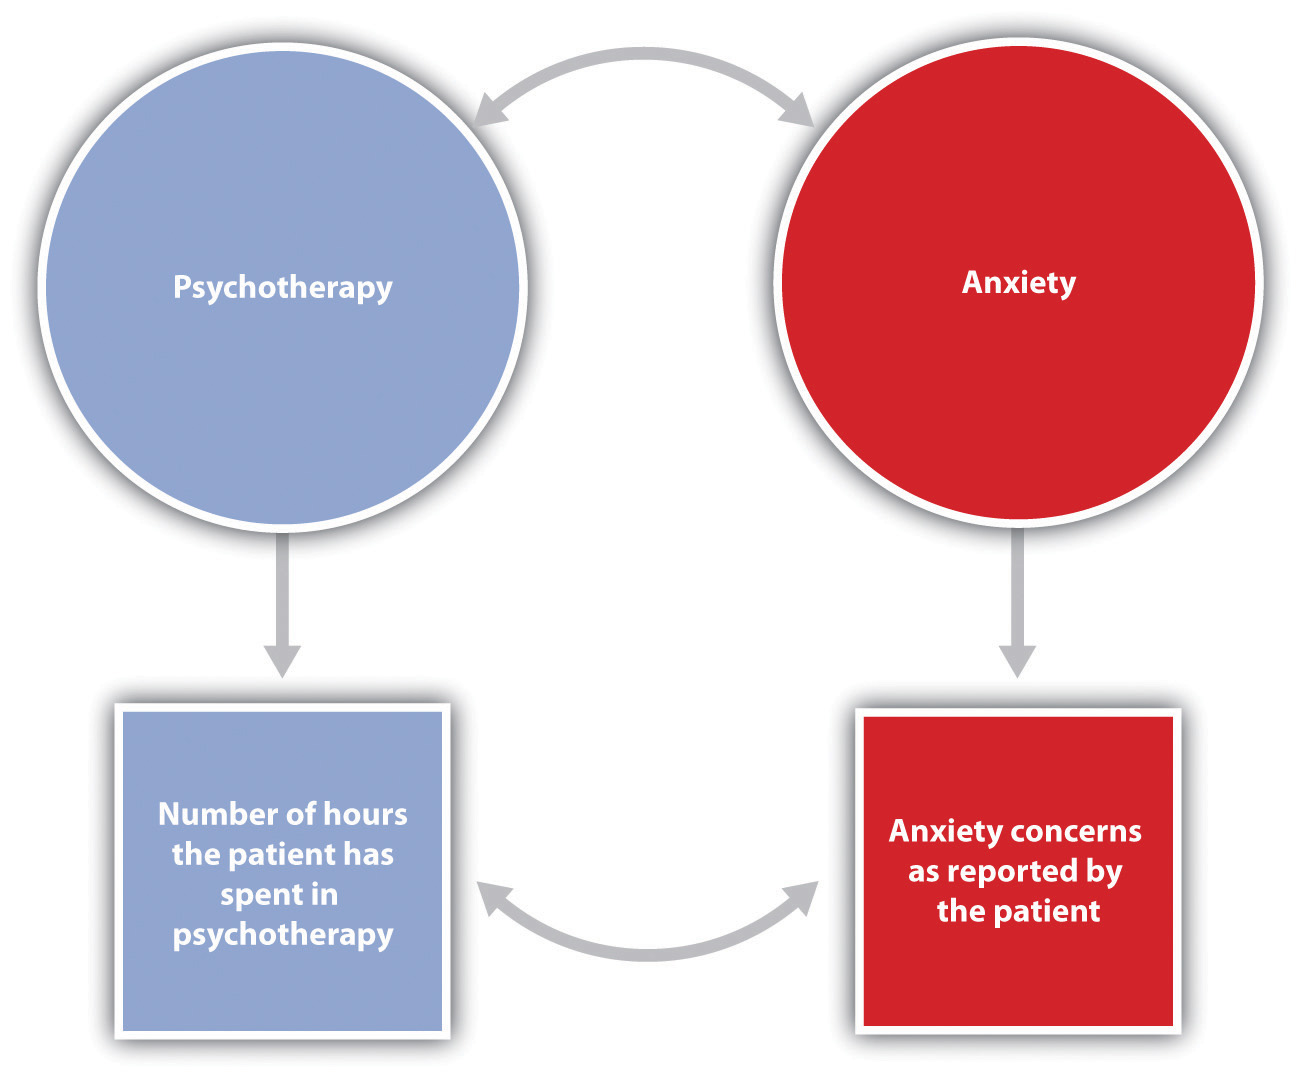 In this research hypothesis, the conceptual variable of attending psychotherapy is operationalized using the number of hours of psychotherapy the client has completed, and the conceptual variable of anxiety is operationalized using self-reported levels of anxiety. The research hypothesis is that more psychotherapy will be related to less reported anxiety.